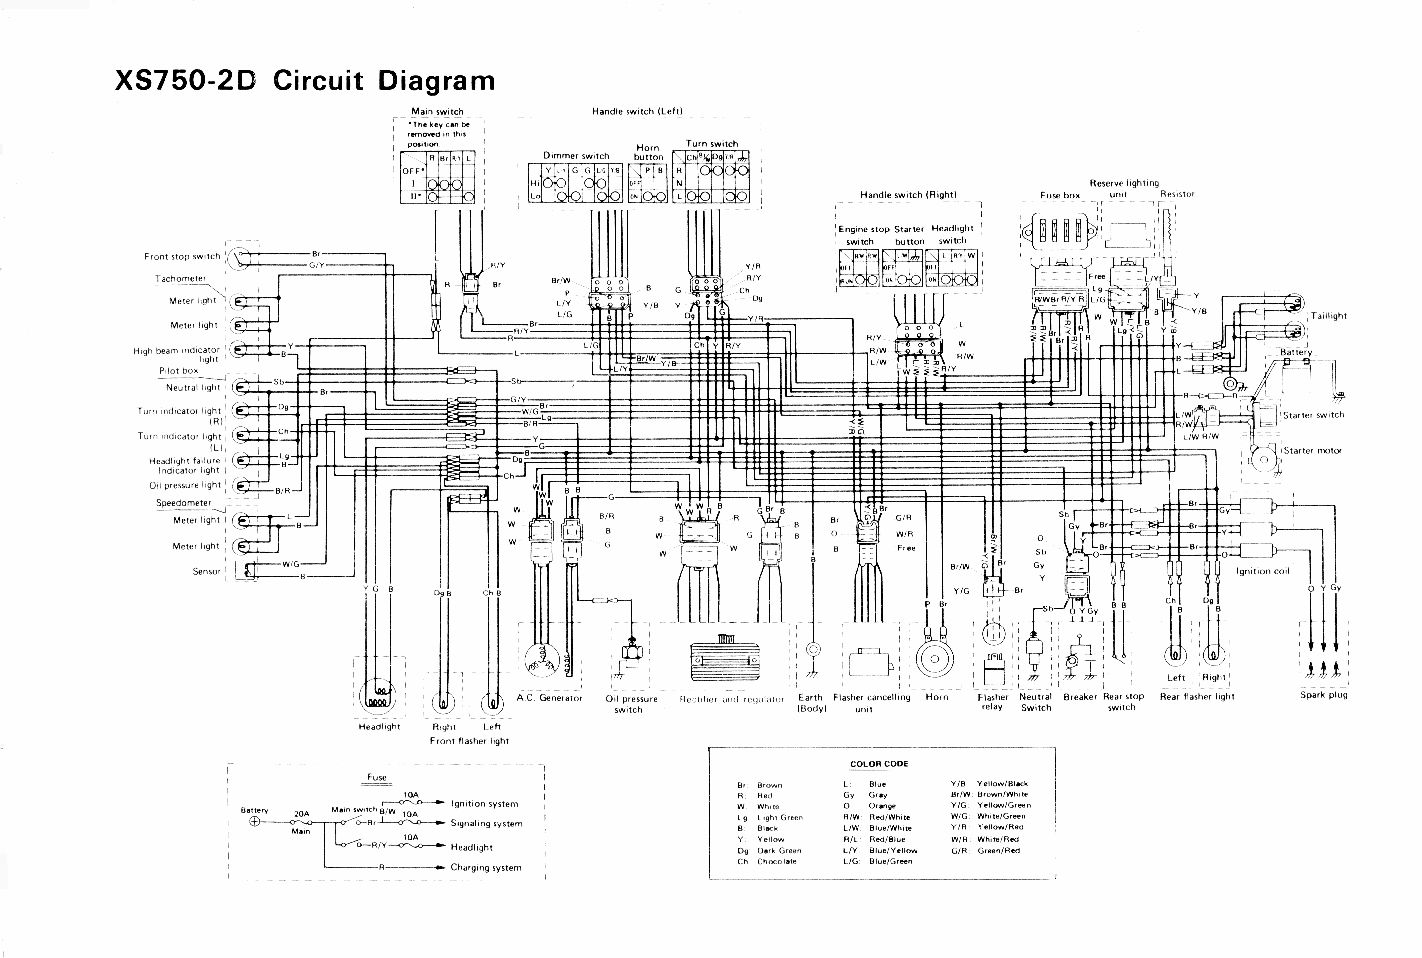 1986 Yamaha Virago 700 Wiring Diagram Schematic | Wiring ... on